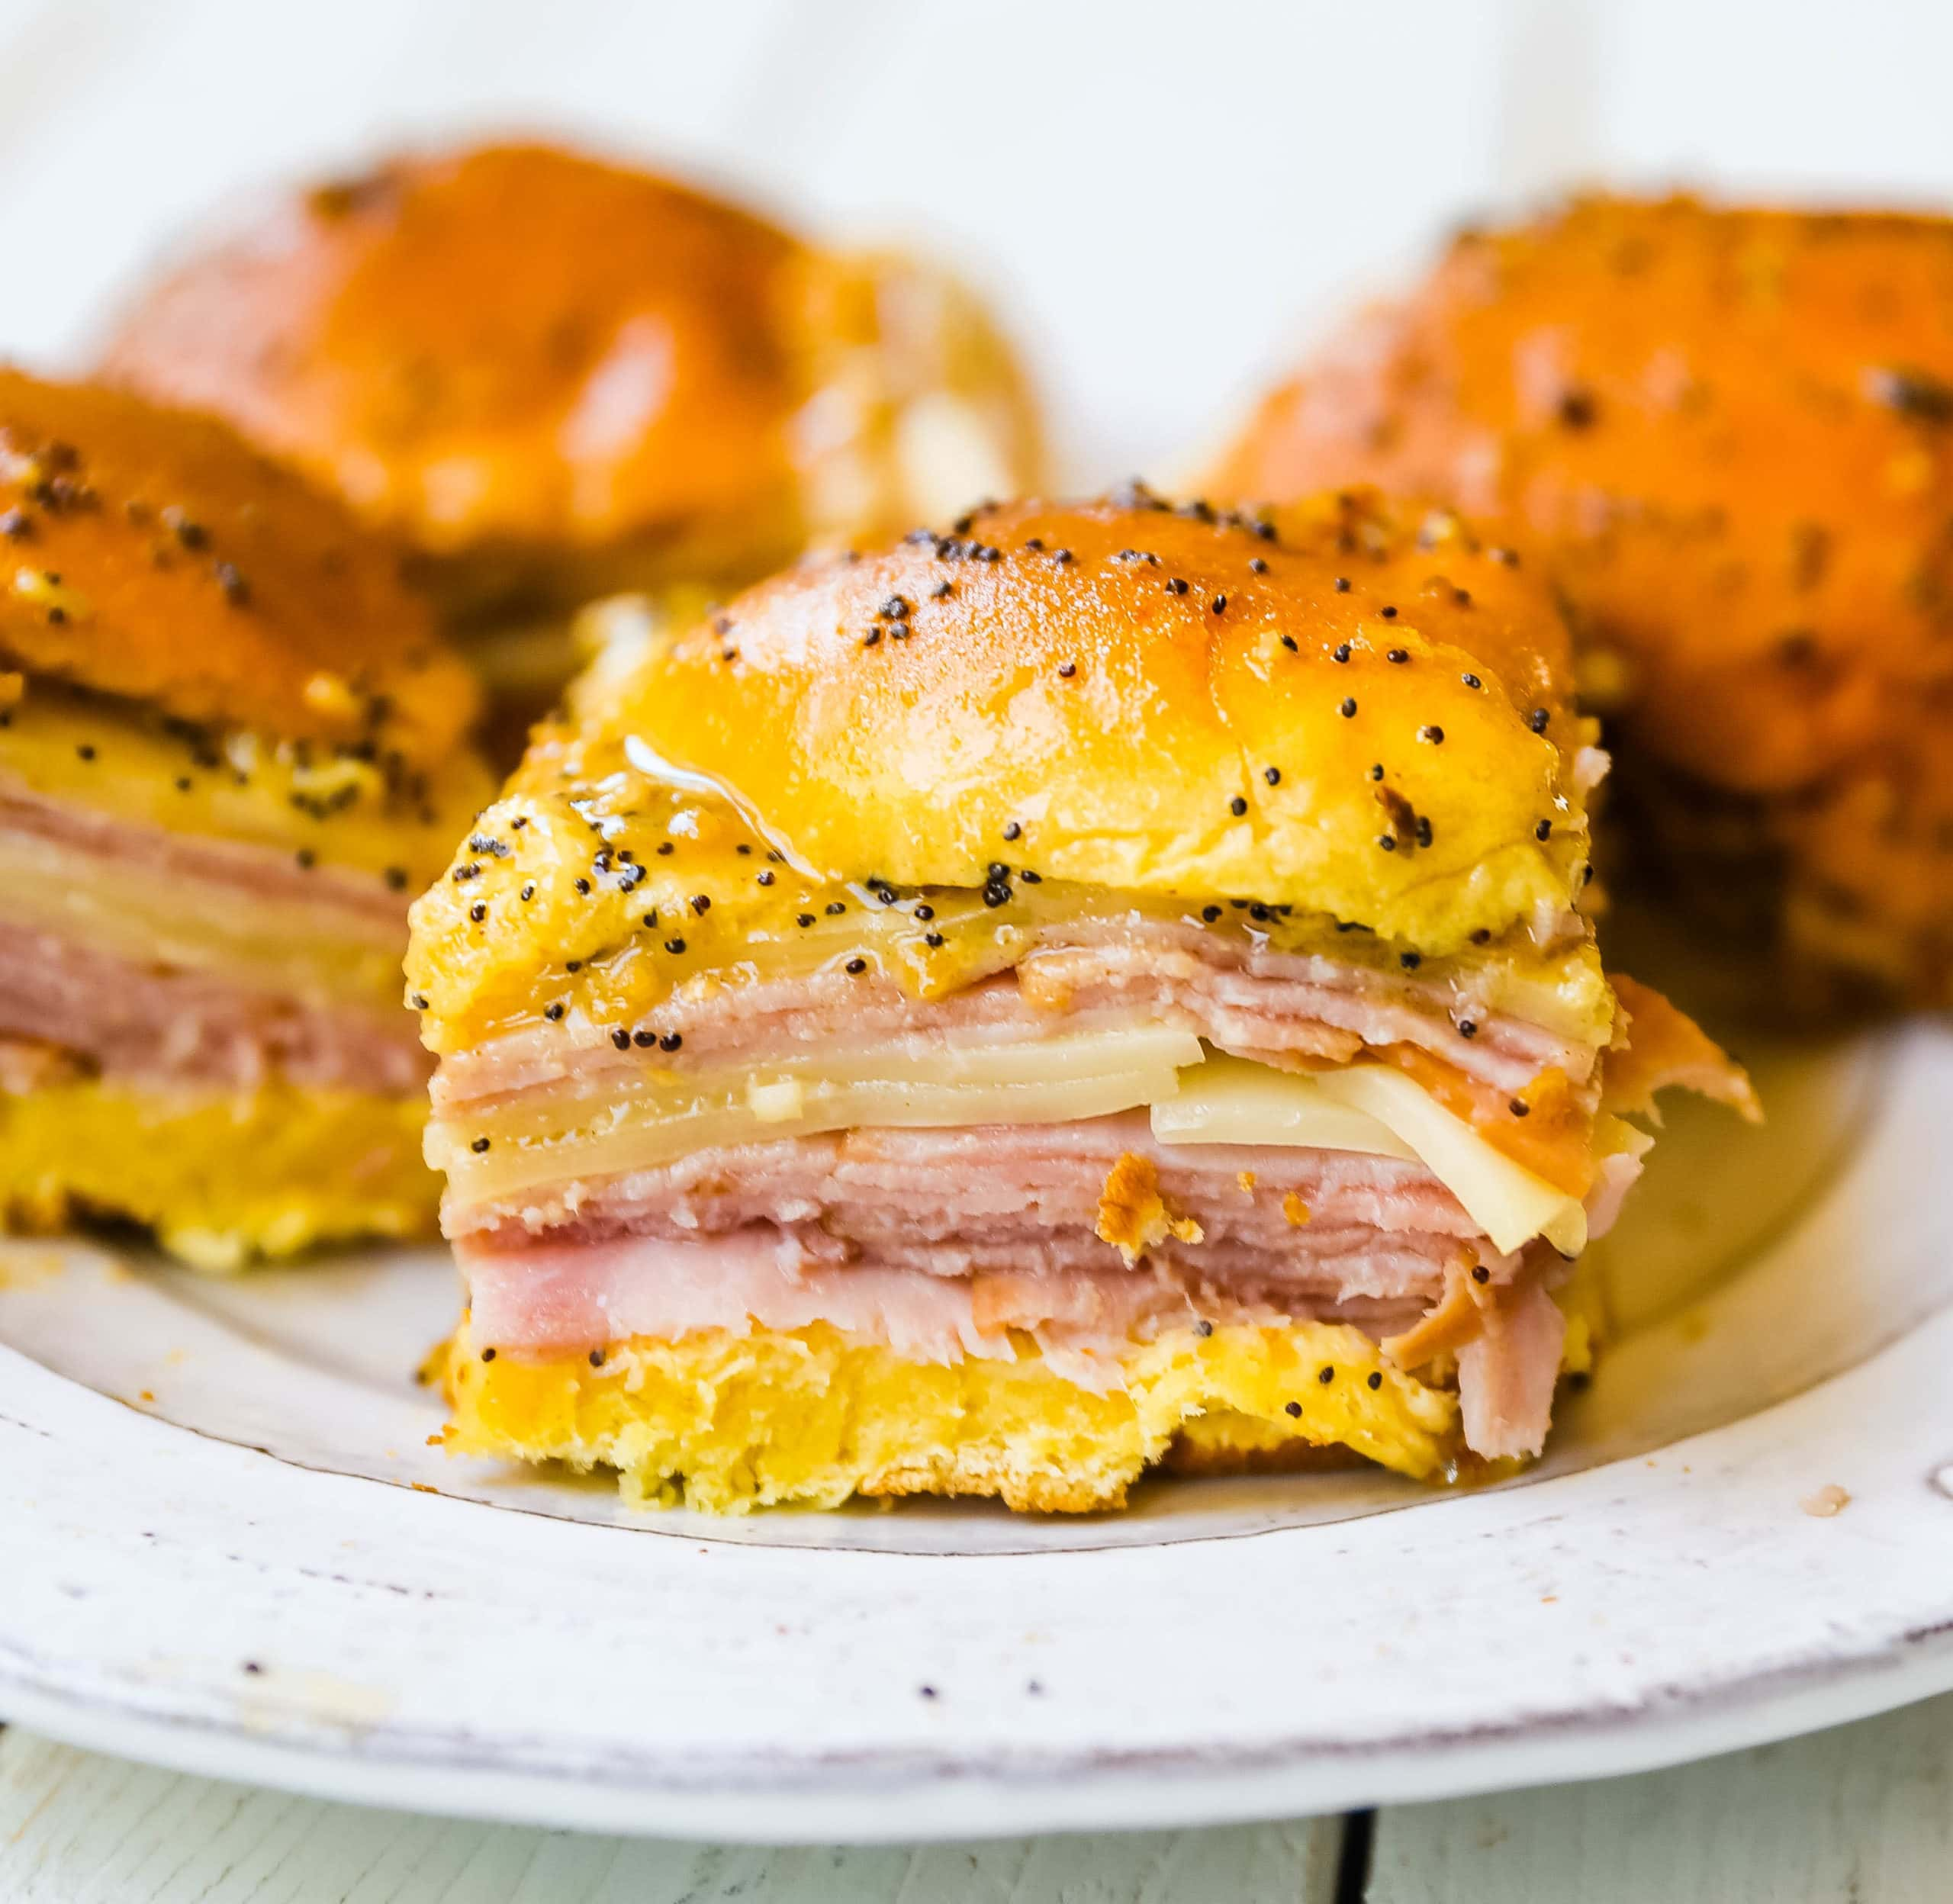 Ham and Cheese Sliders  These baked ham and cheese sliders and layered with ham, melted cheese, on a Hawaiian sweet roll, and basted with a flavorful, buttery sauce. www.modernhoney.com #sandwiches #sliders #hamandcheesesliders